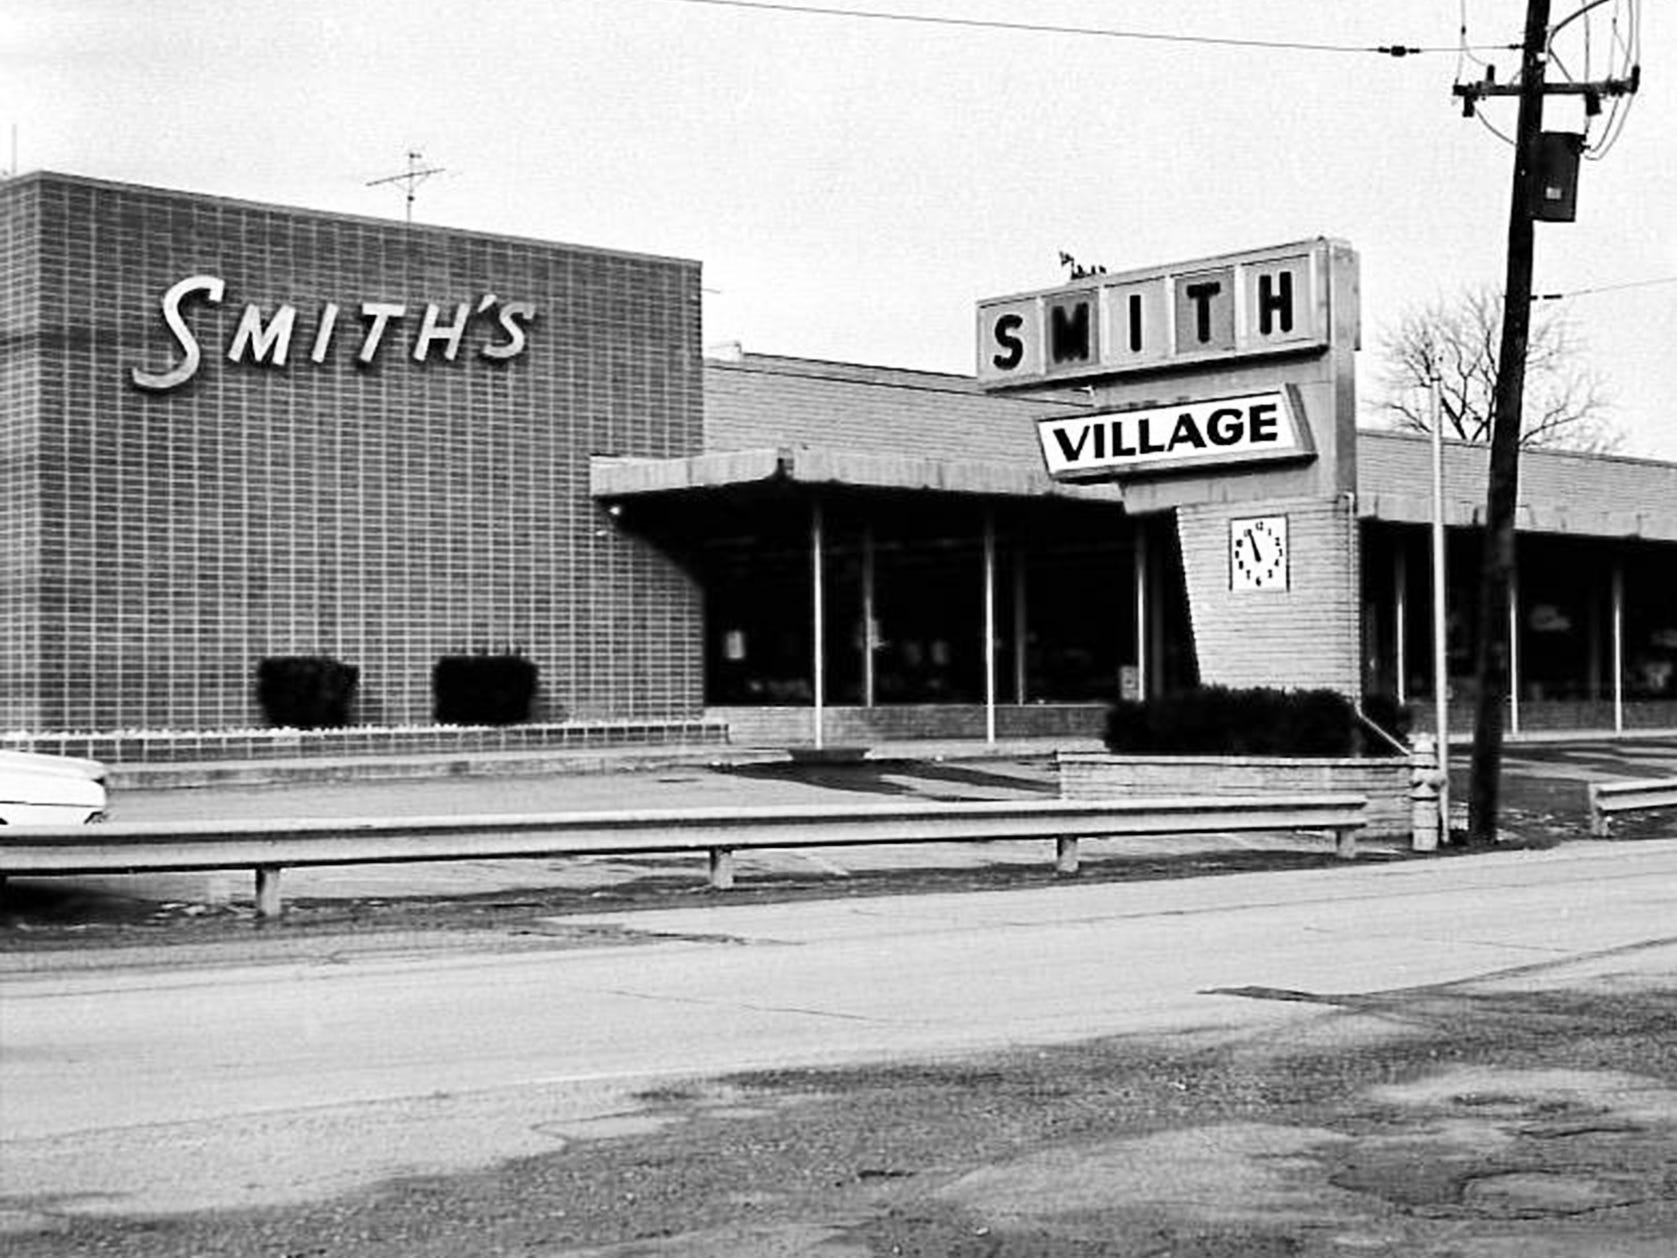 This is Smith Village, in Jacobus, as it looked in the early 1960s. A major change occurred in 1977 when the family decided to change the storeÕs format to all furniture and appliances. The housewares, toy, clothing, jewelry, and sporting goods departments were closed and the furniture area was expanded.